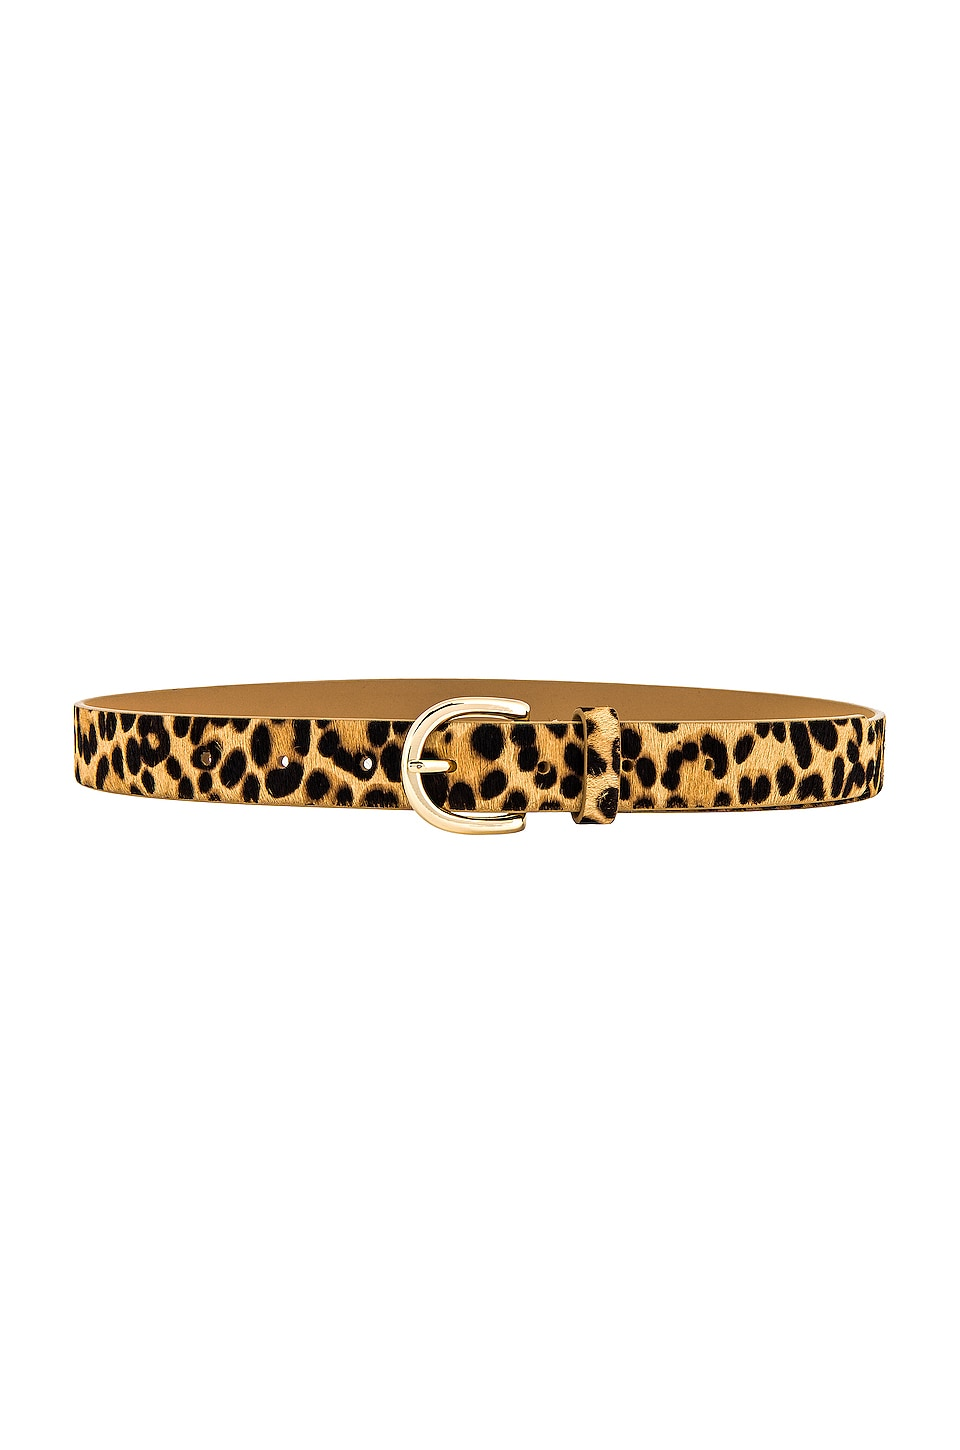 Lovers + Friends Caruso Belt in Tan Leopard